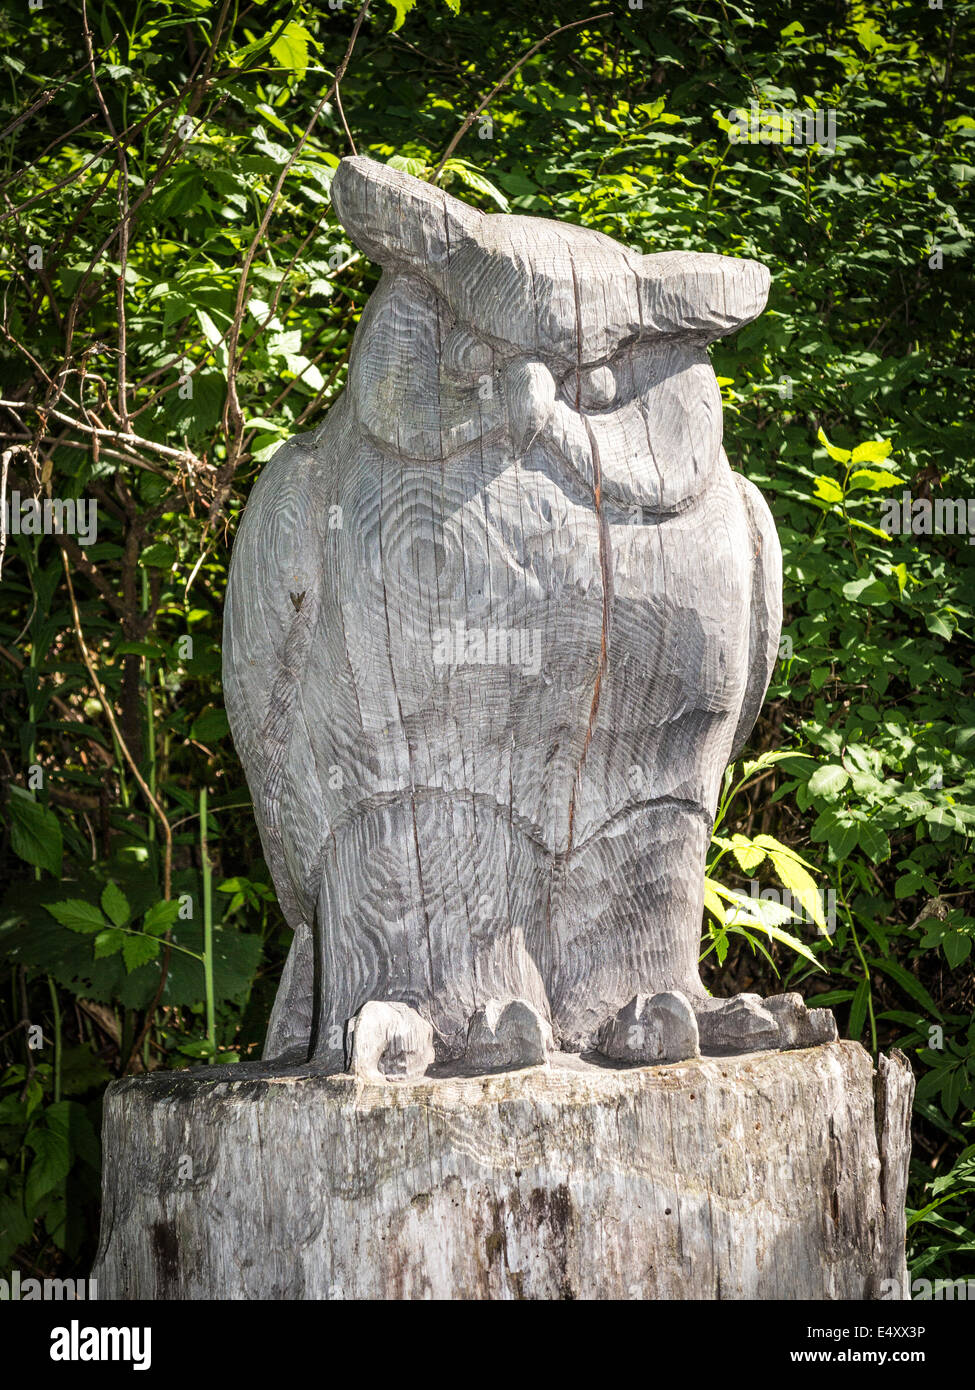 A wooden sculpture of an owl, carved from a tree trunk, along a nature trail in Switzerland - Stock Image